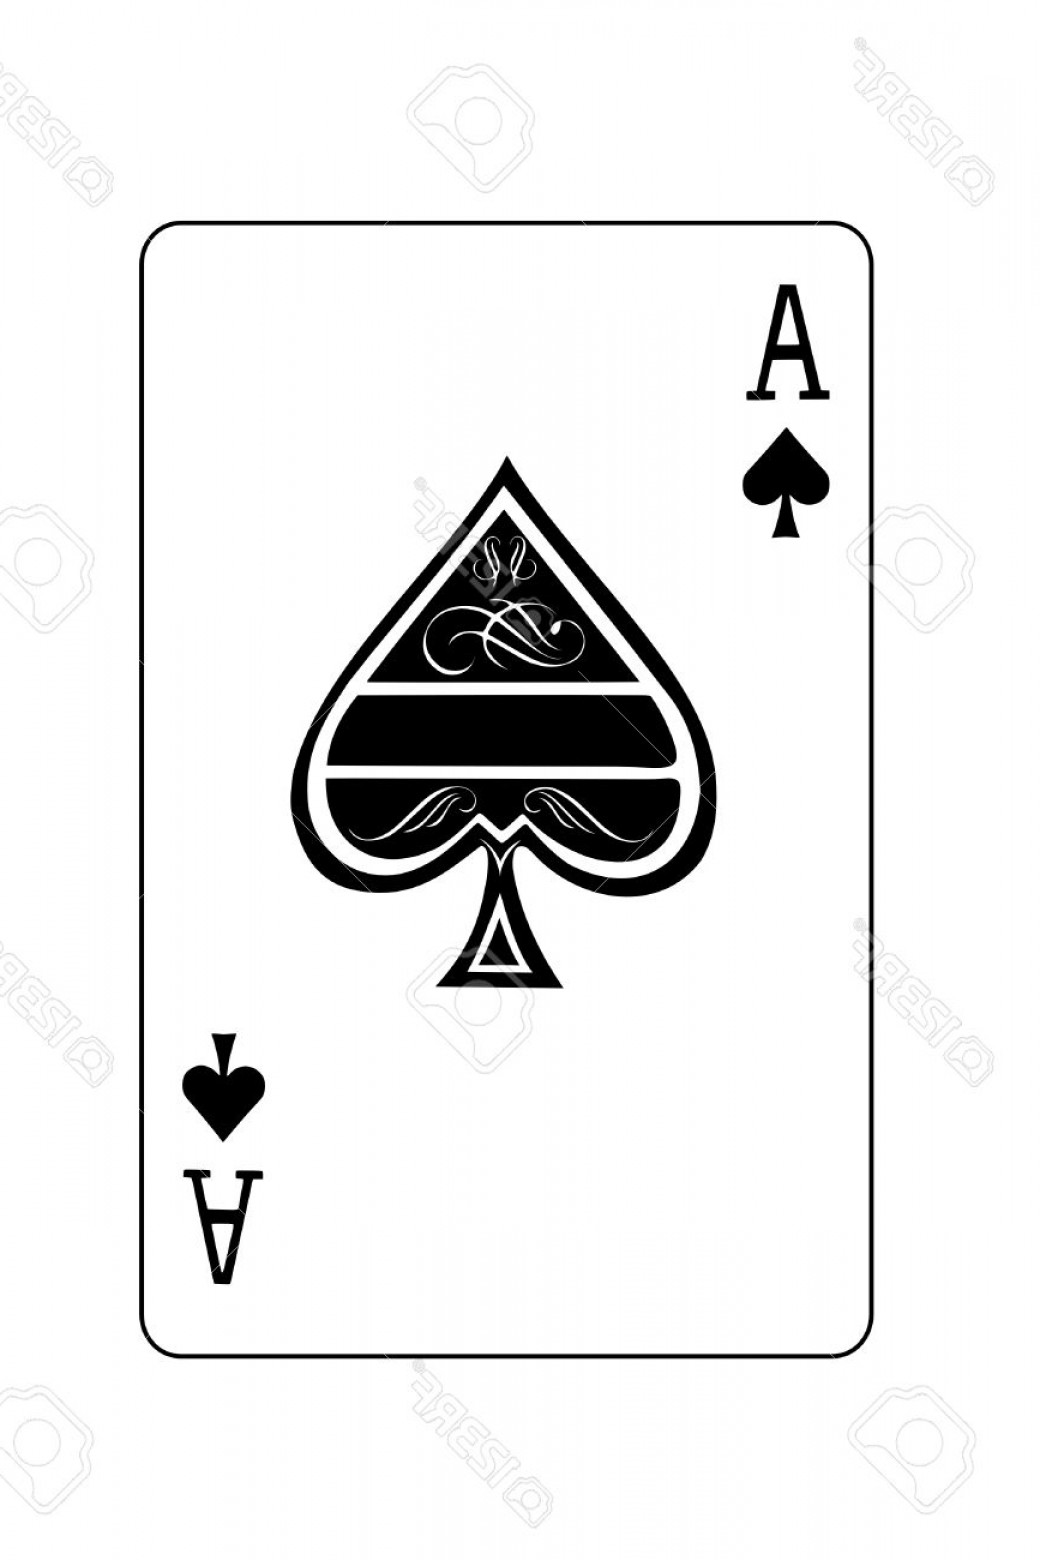 Spade Card Vector: Photoa Isolated Ace Of Spades Playing Card